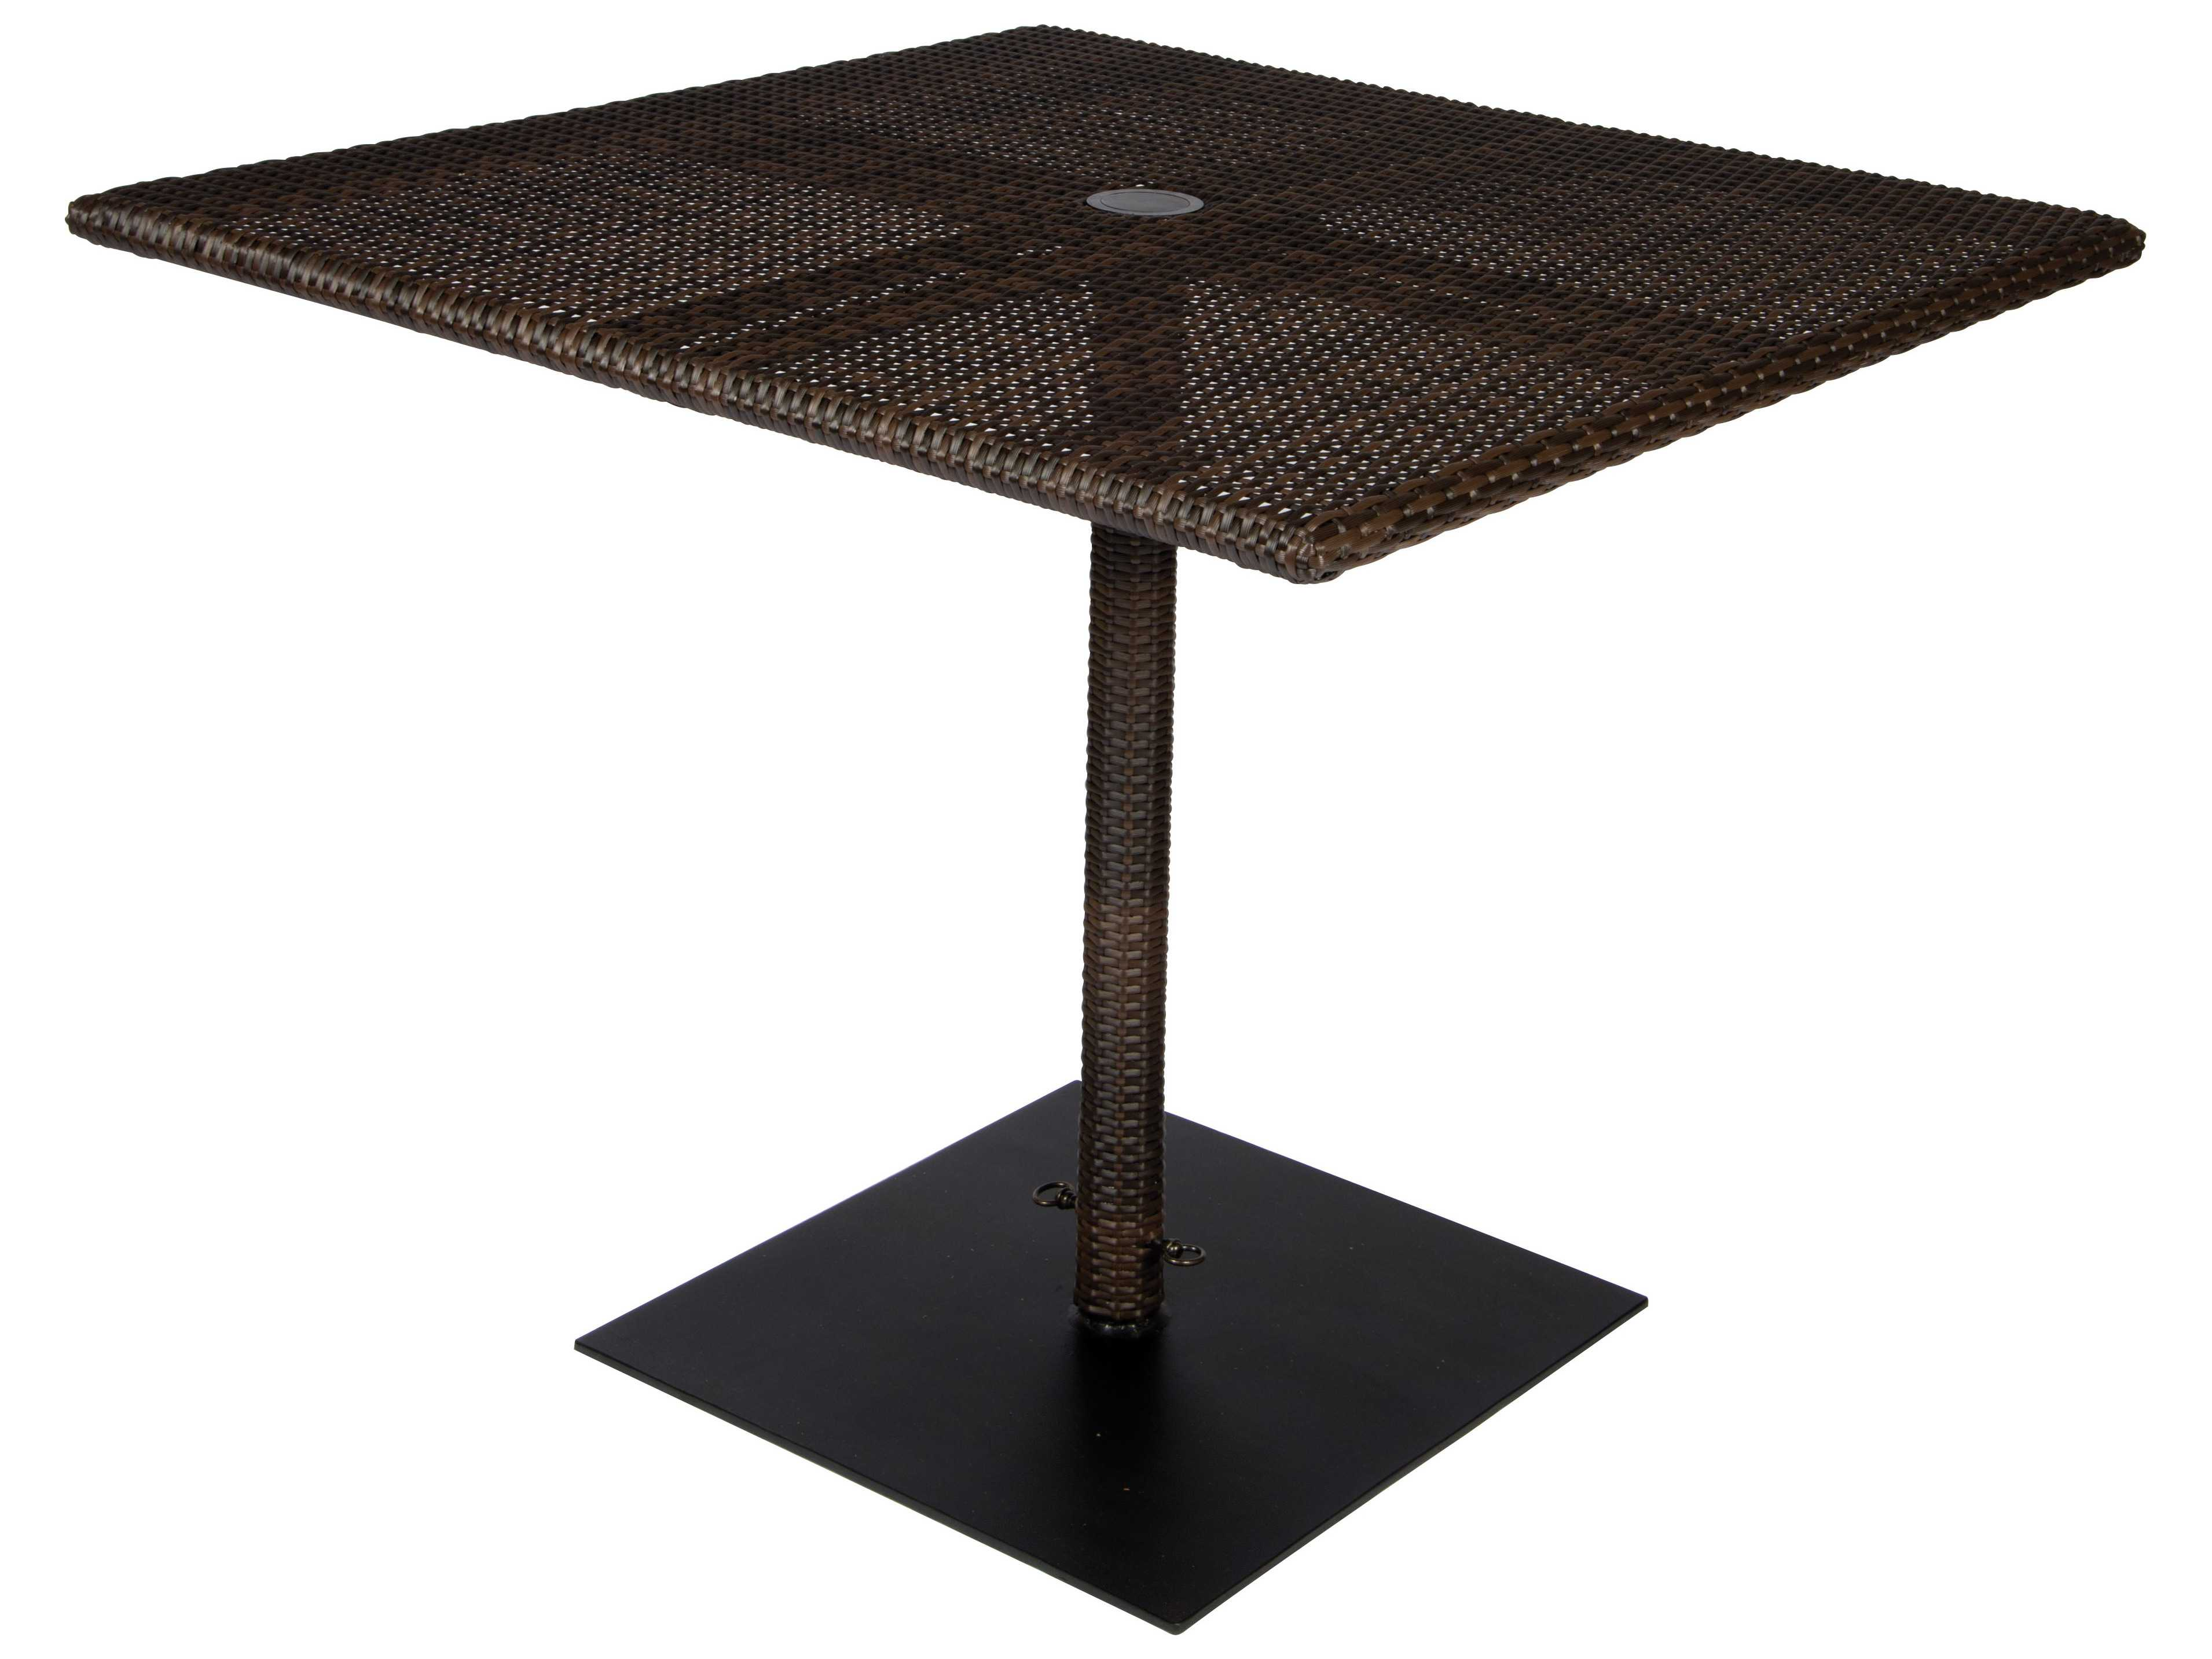 Woodard whitecraft all weather 36 square table with for Table umbrella